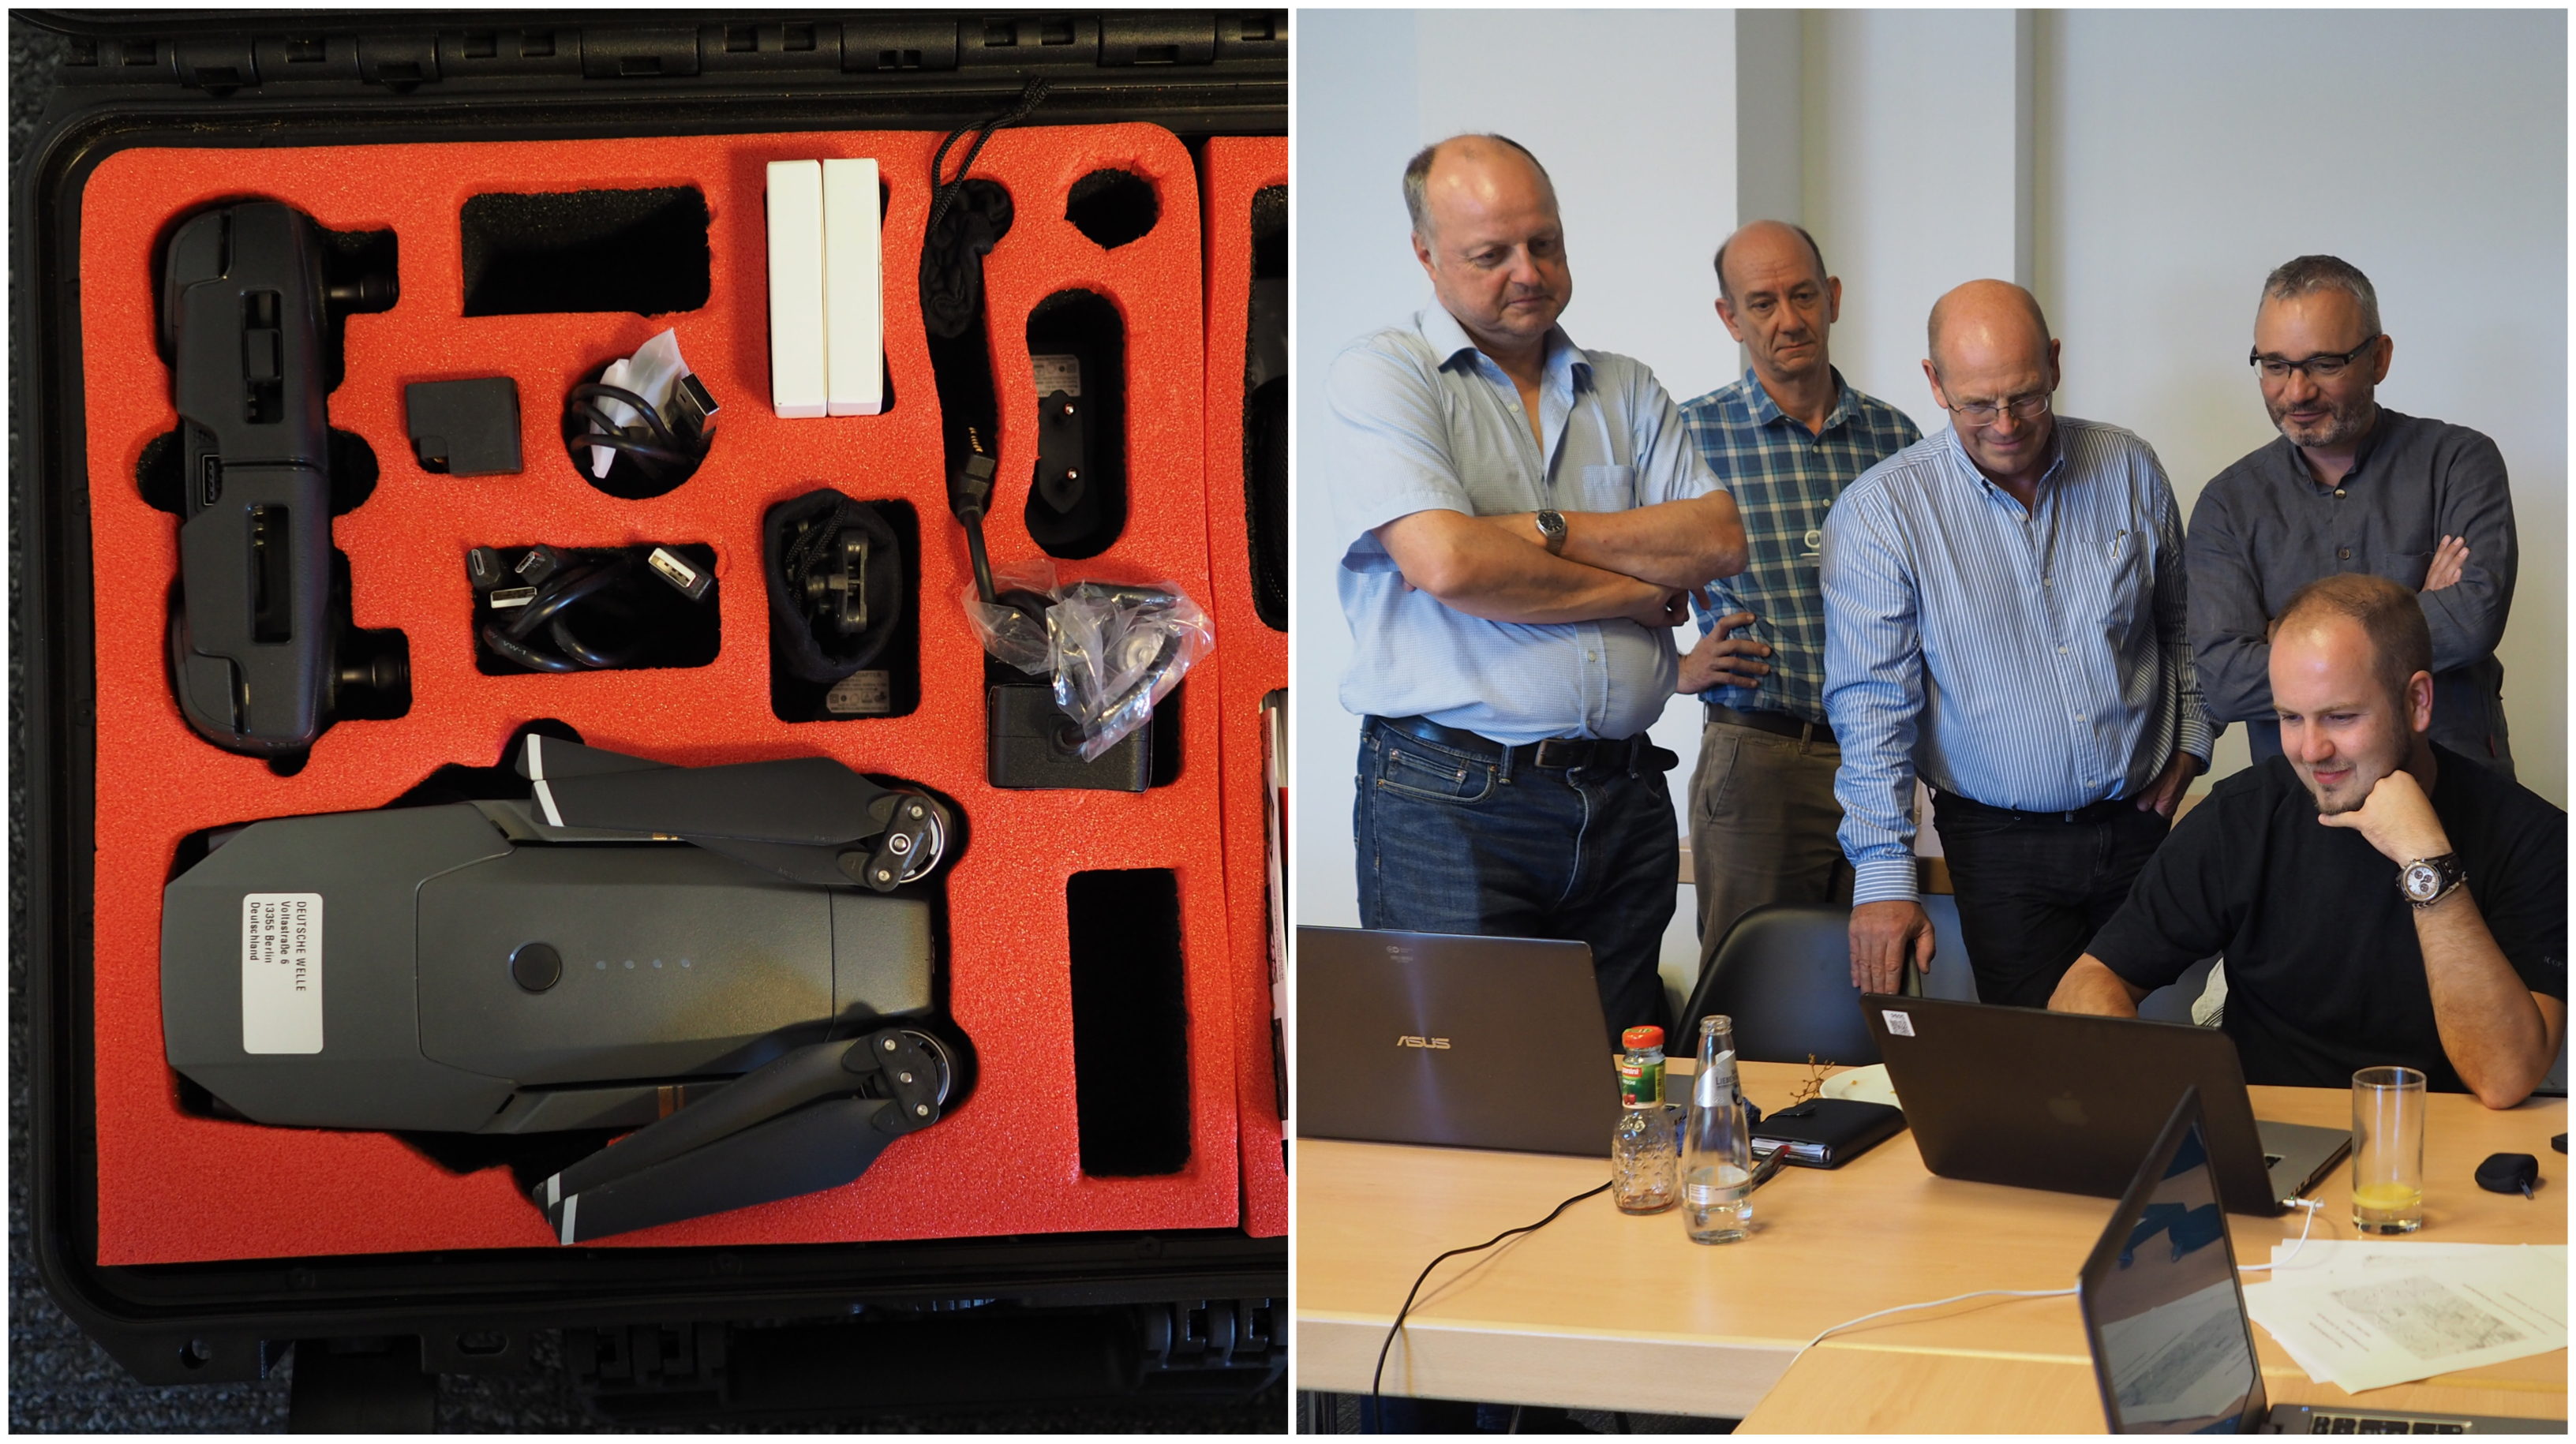 The Drone Case (left) and the Demonstration (right)